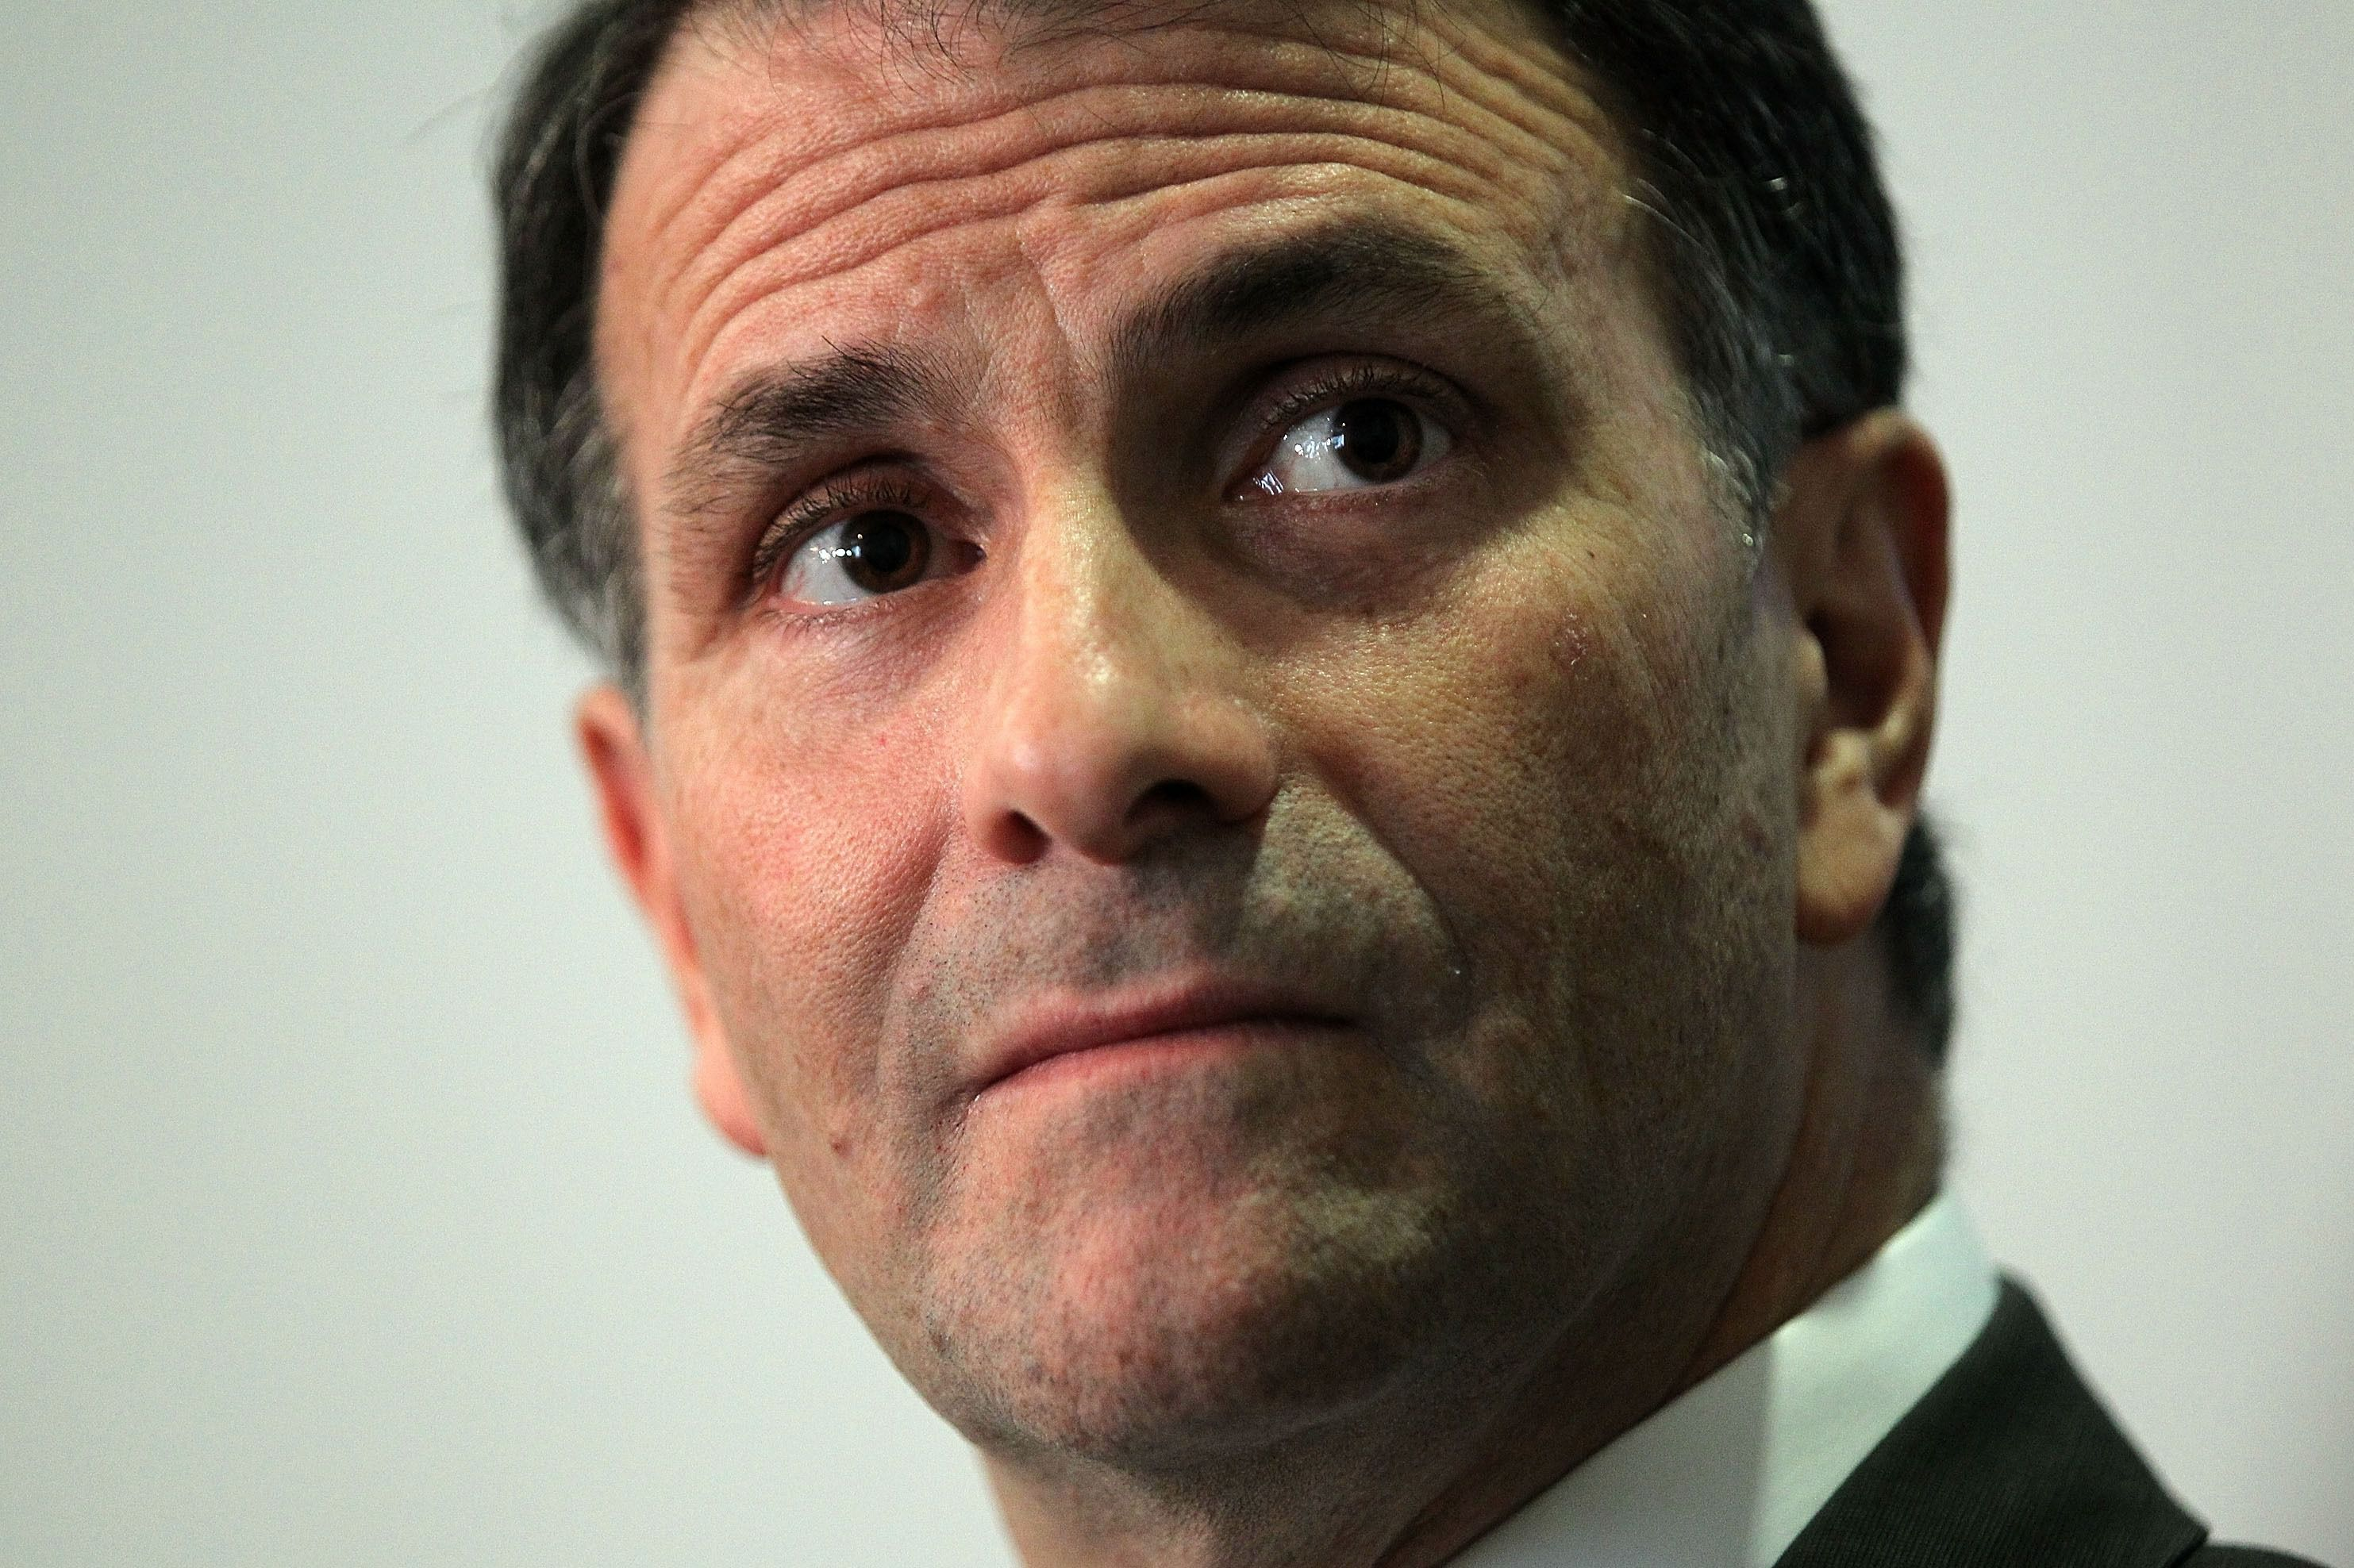 Disgraced Lobbyist Jack Abramoff Does The Conga With Congo ... - Forward